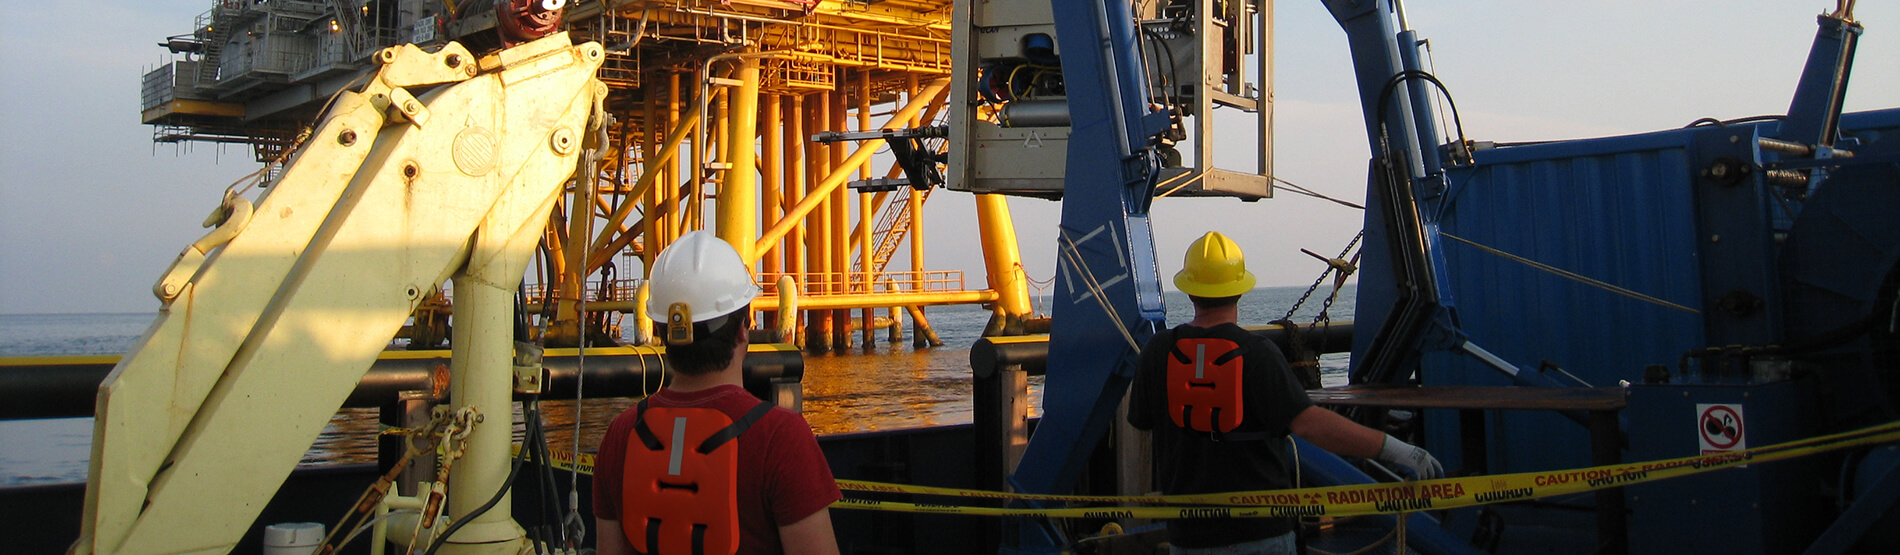 Mohican ROV Launch at platform job site from vessel